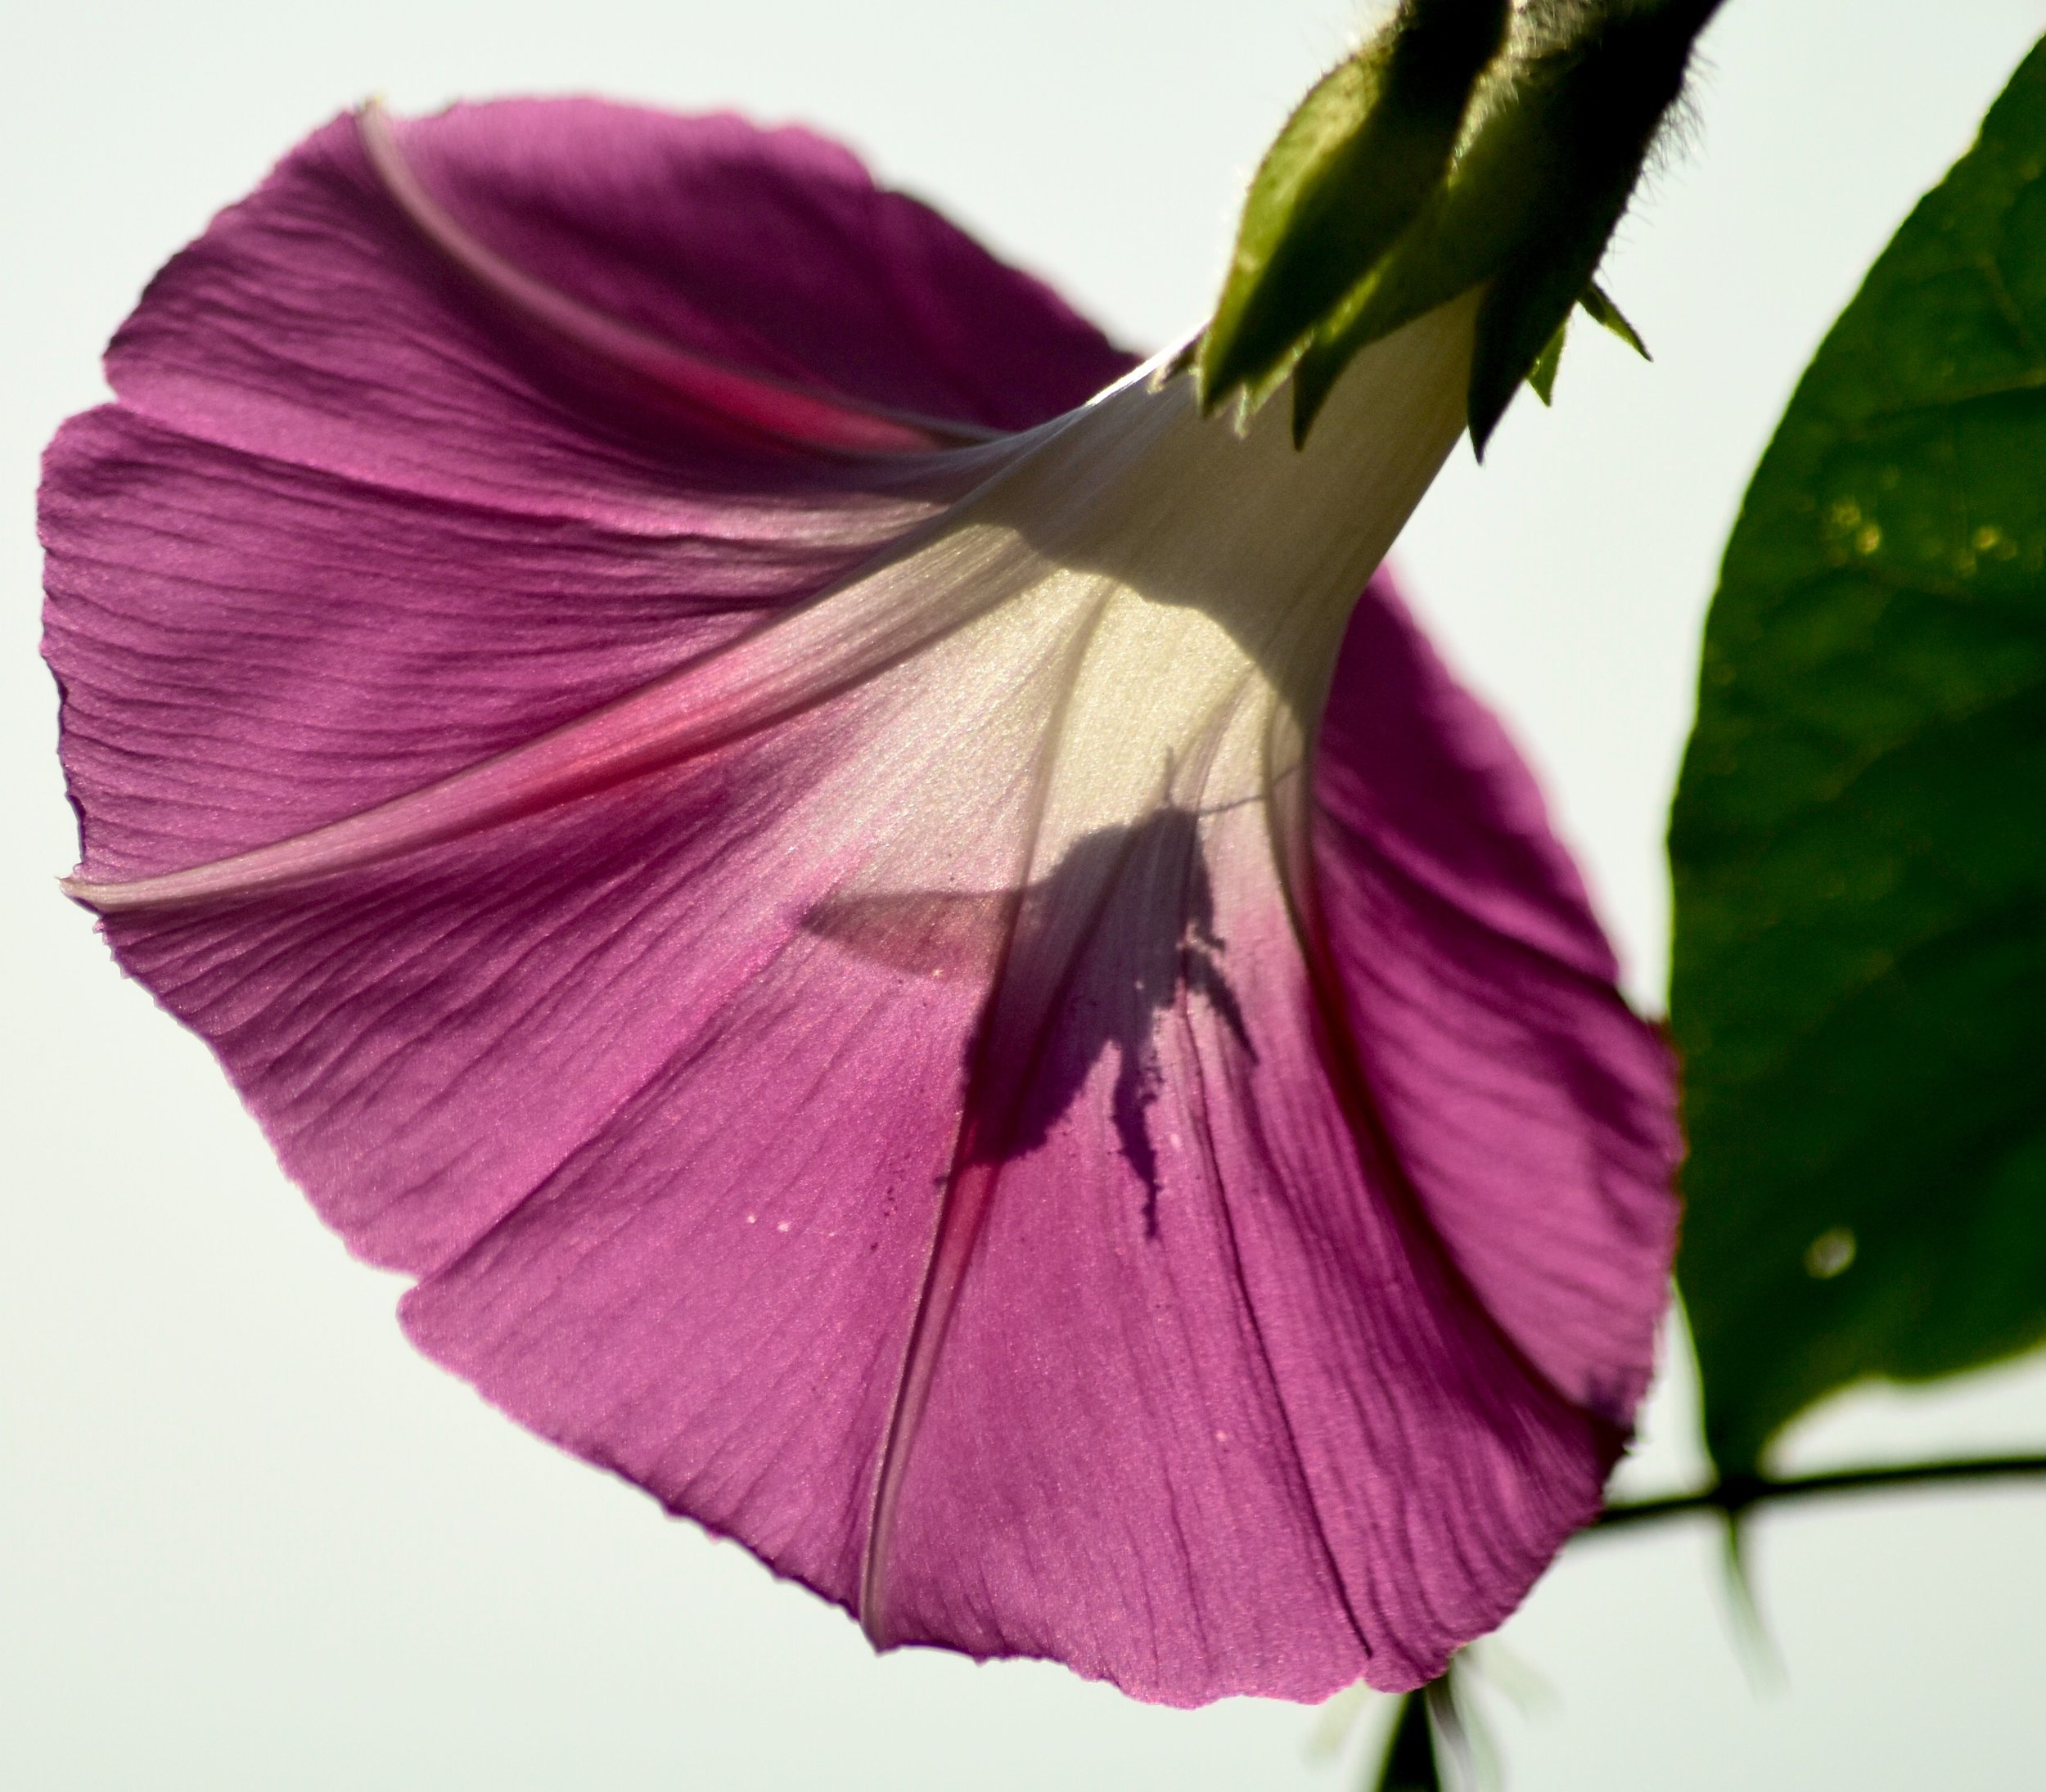 Bumblebee Silhouette in Morning Glory